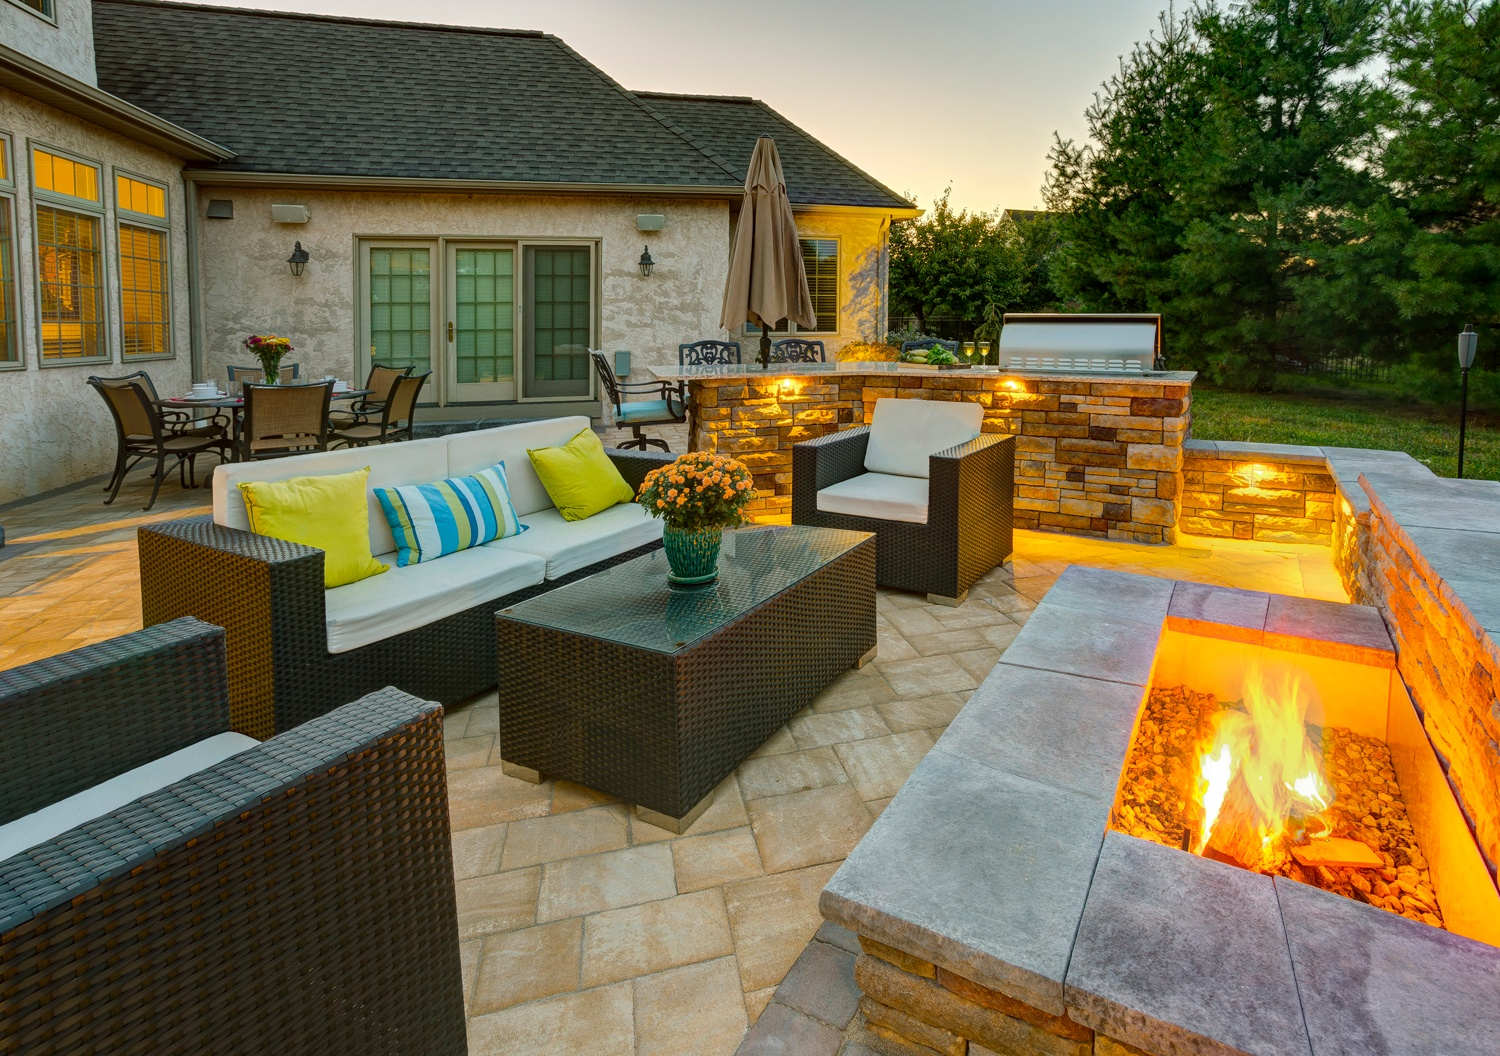 patio-outdoor-kitchen-fire-pit-wall-lighting-03